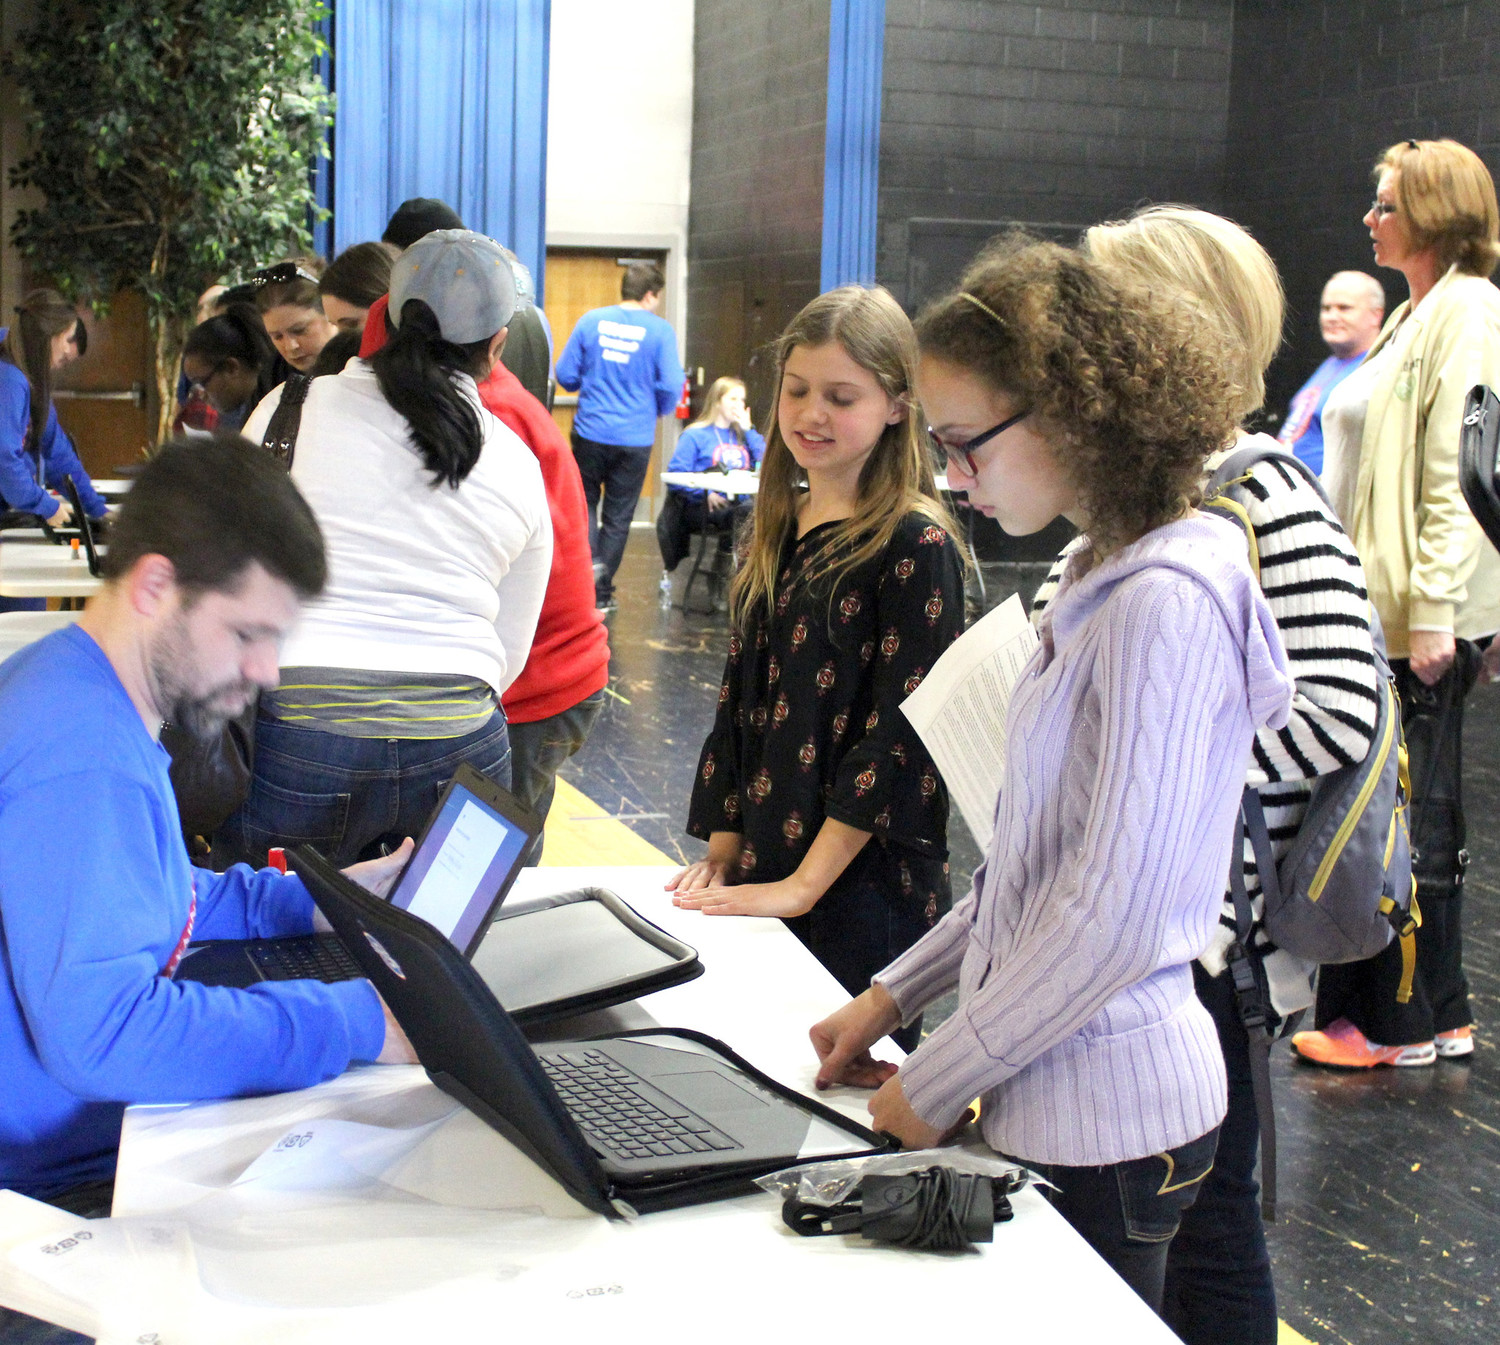 TUDENTS wait eagerly as a school staff member helps them sign into their new laptop computers at Cleveland Middle Schools. The school just issued laptop computers to each of its students.